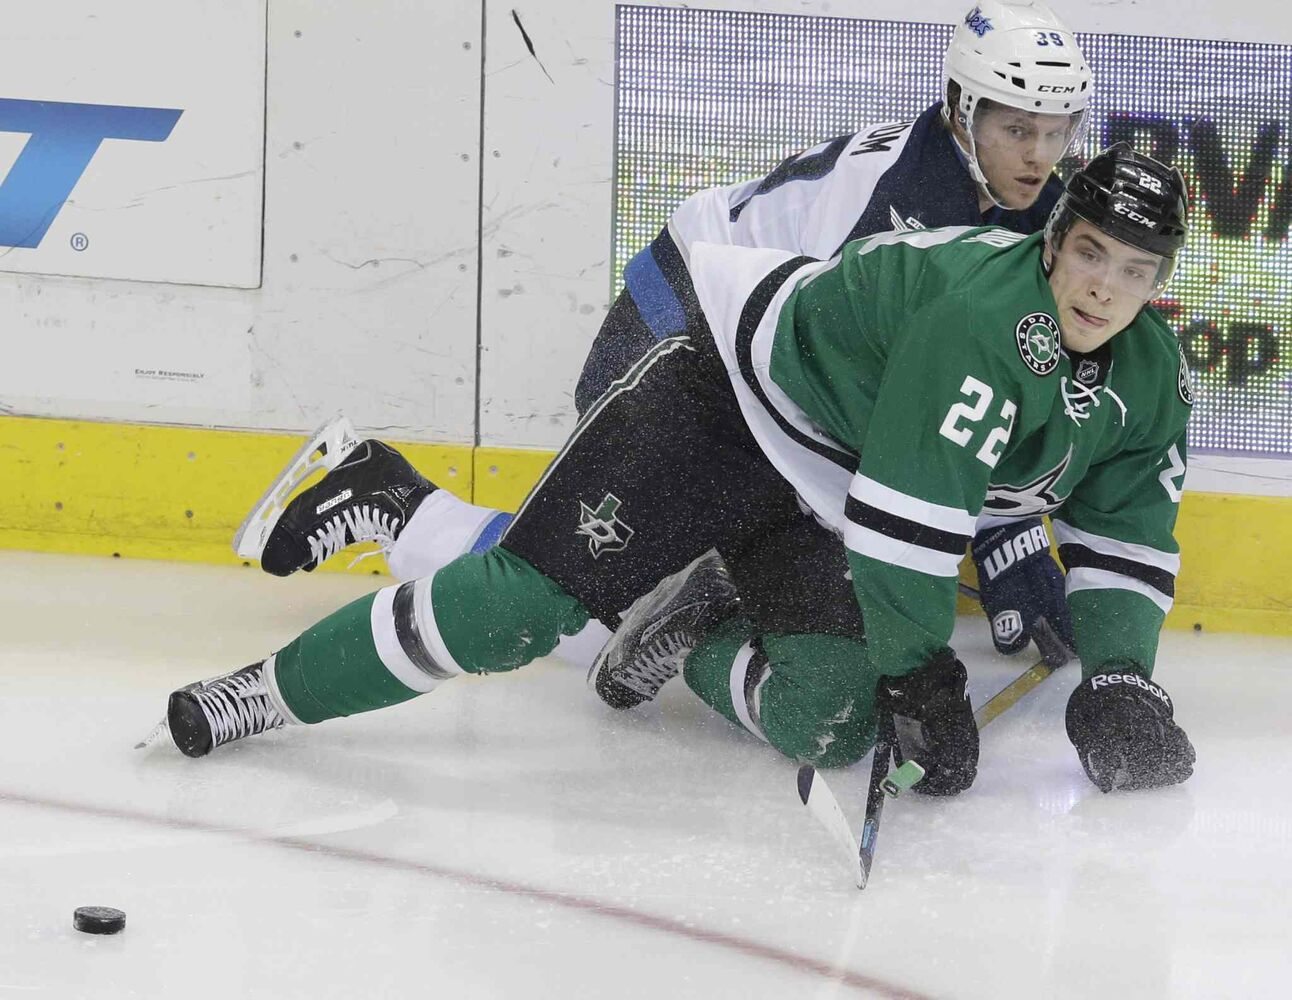 Dallas Stars centre Colton Sceviour and Winnipeg Jets defenceman Tobias Enstrom collide during the first period. (L.M. OTERO / THE ASSOCIATED PRESS)